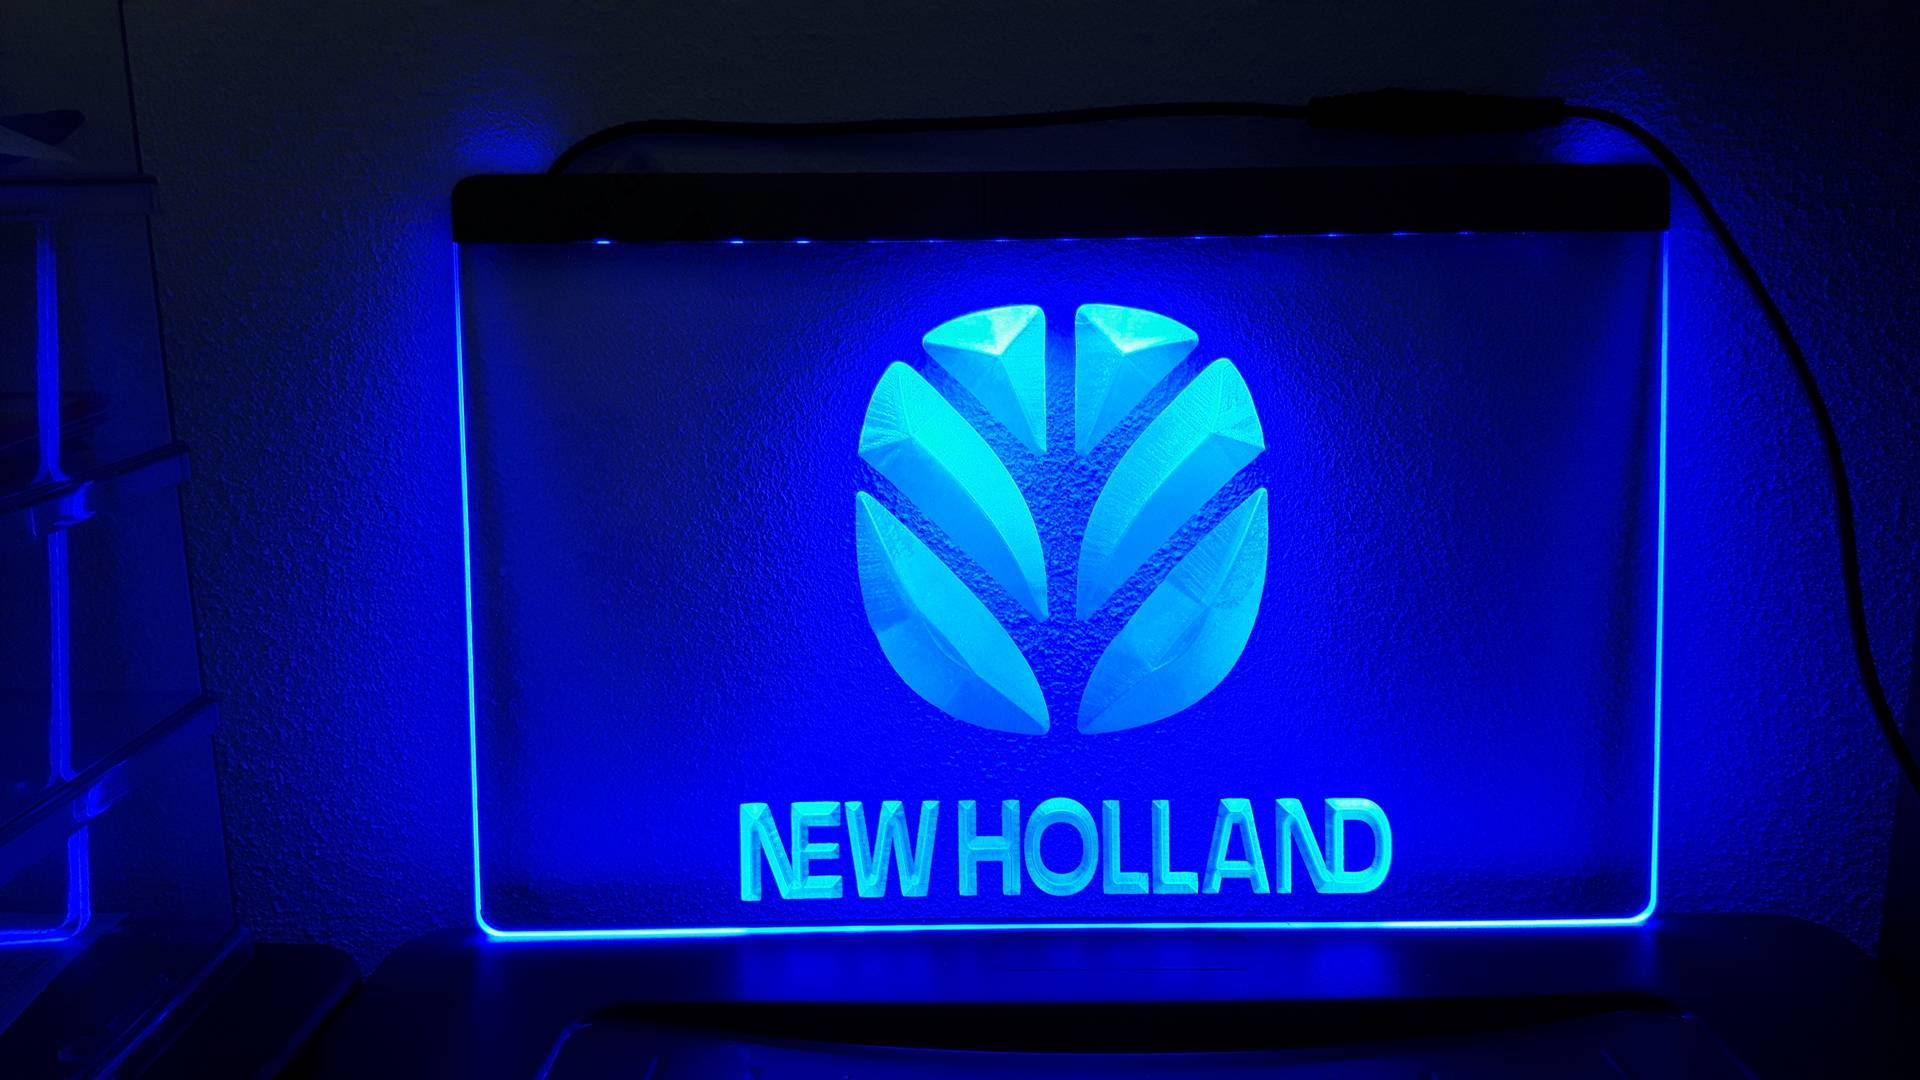 https://www.americansaleshop.nl/wp-content/uploads/2017/06/NEW-HOLLAND-BLAUW.jpg